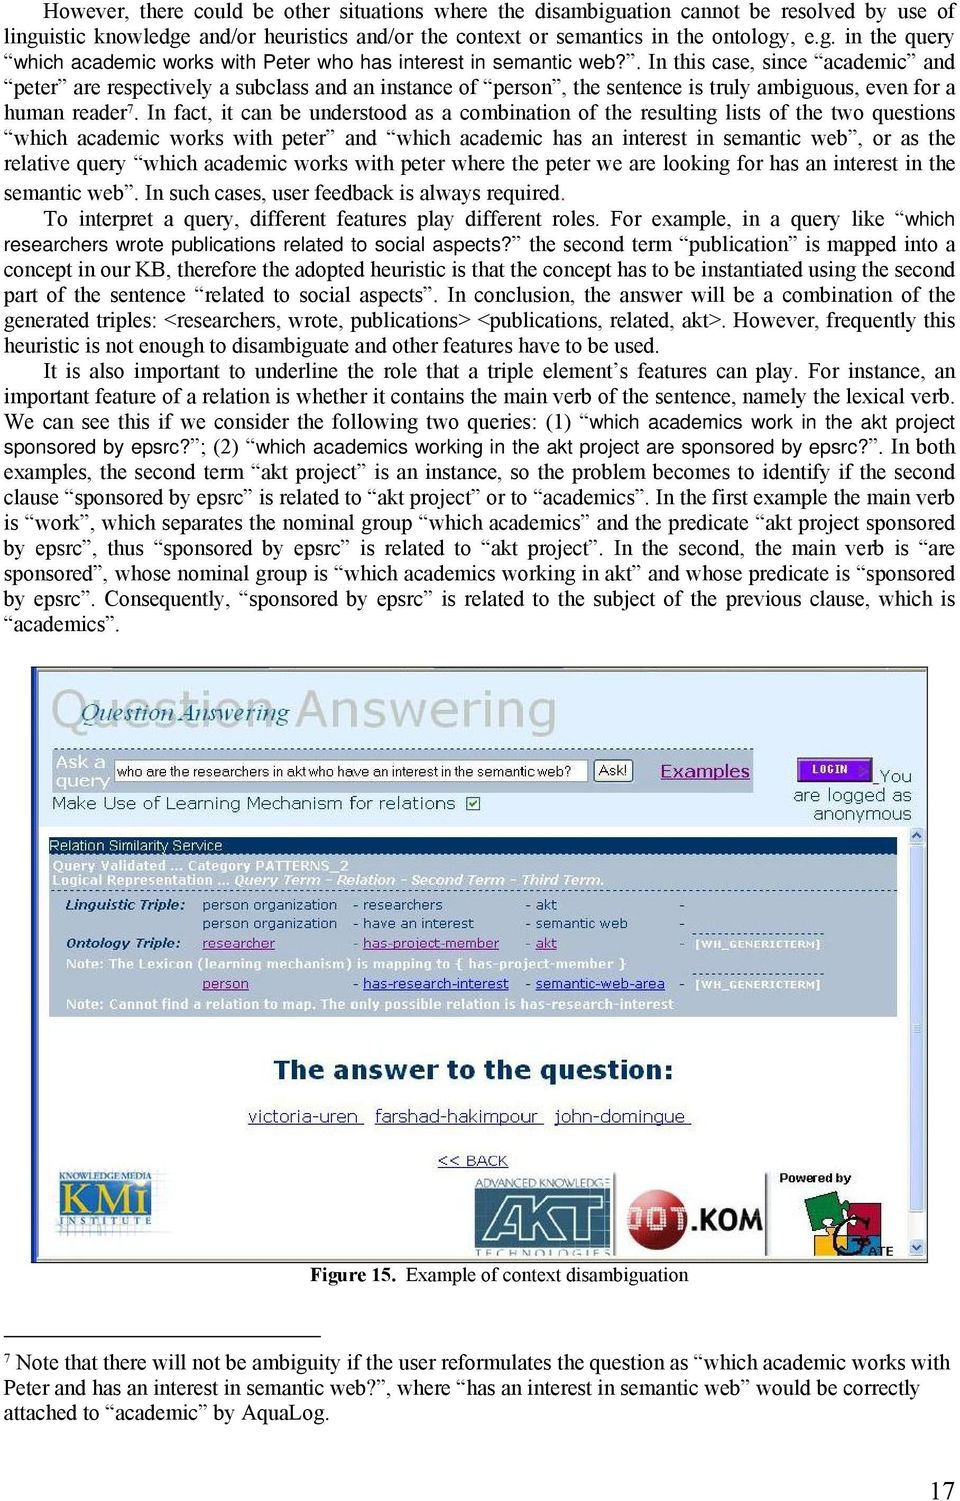 In fact, it can be understood as a combination of the resulting lists of the two questions which academic works with peter and which academic has an interest in semantic web, or as the relative query